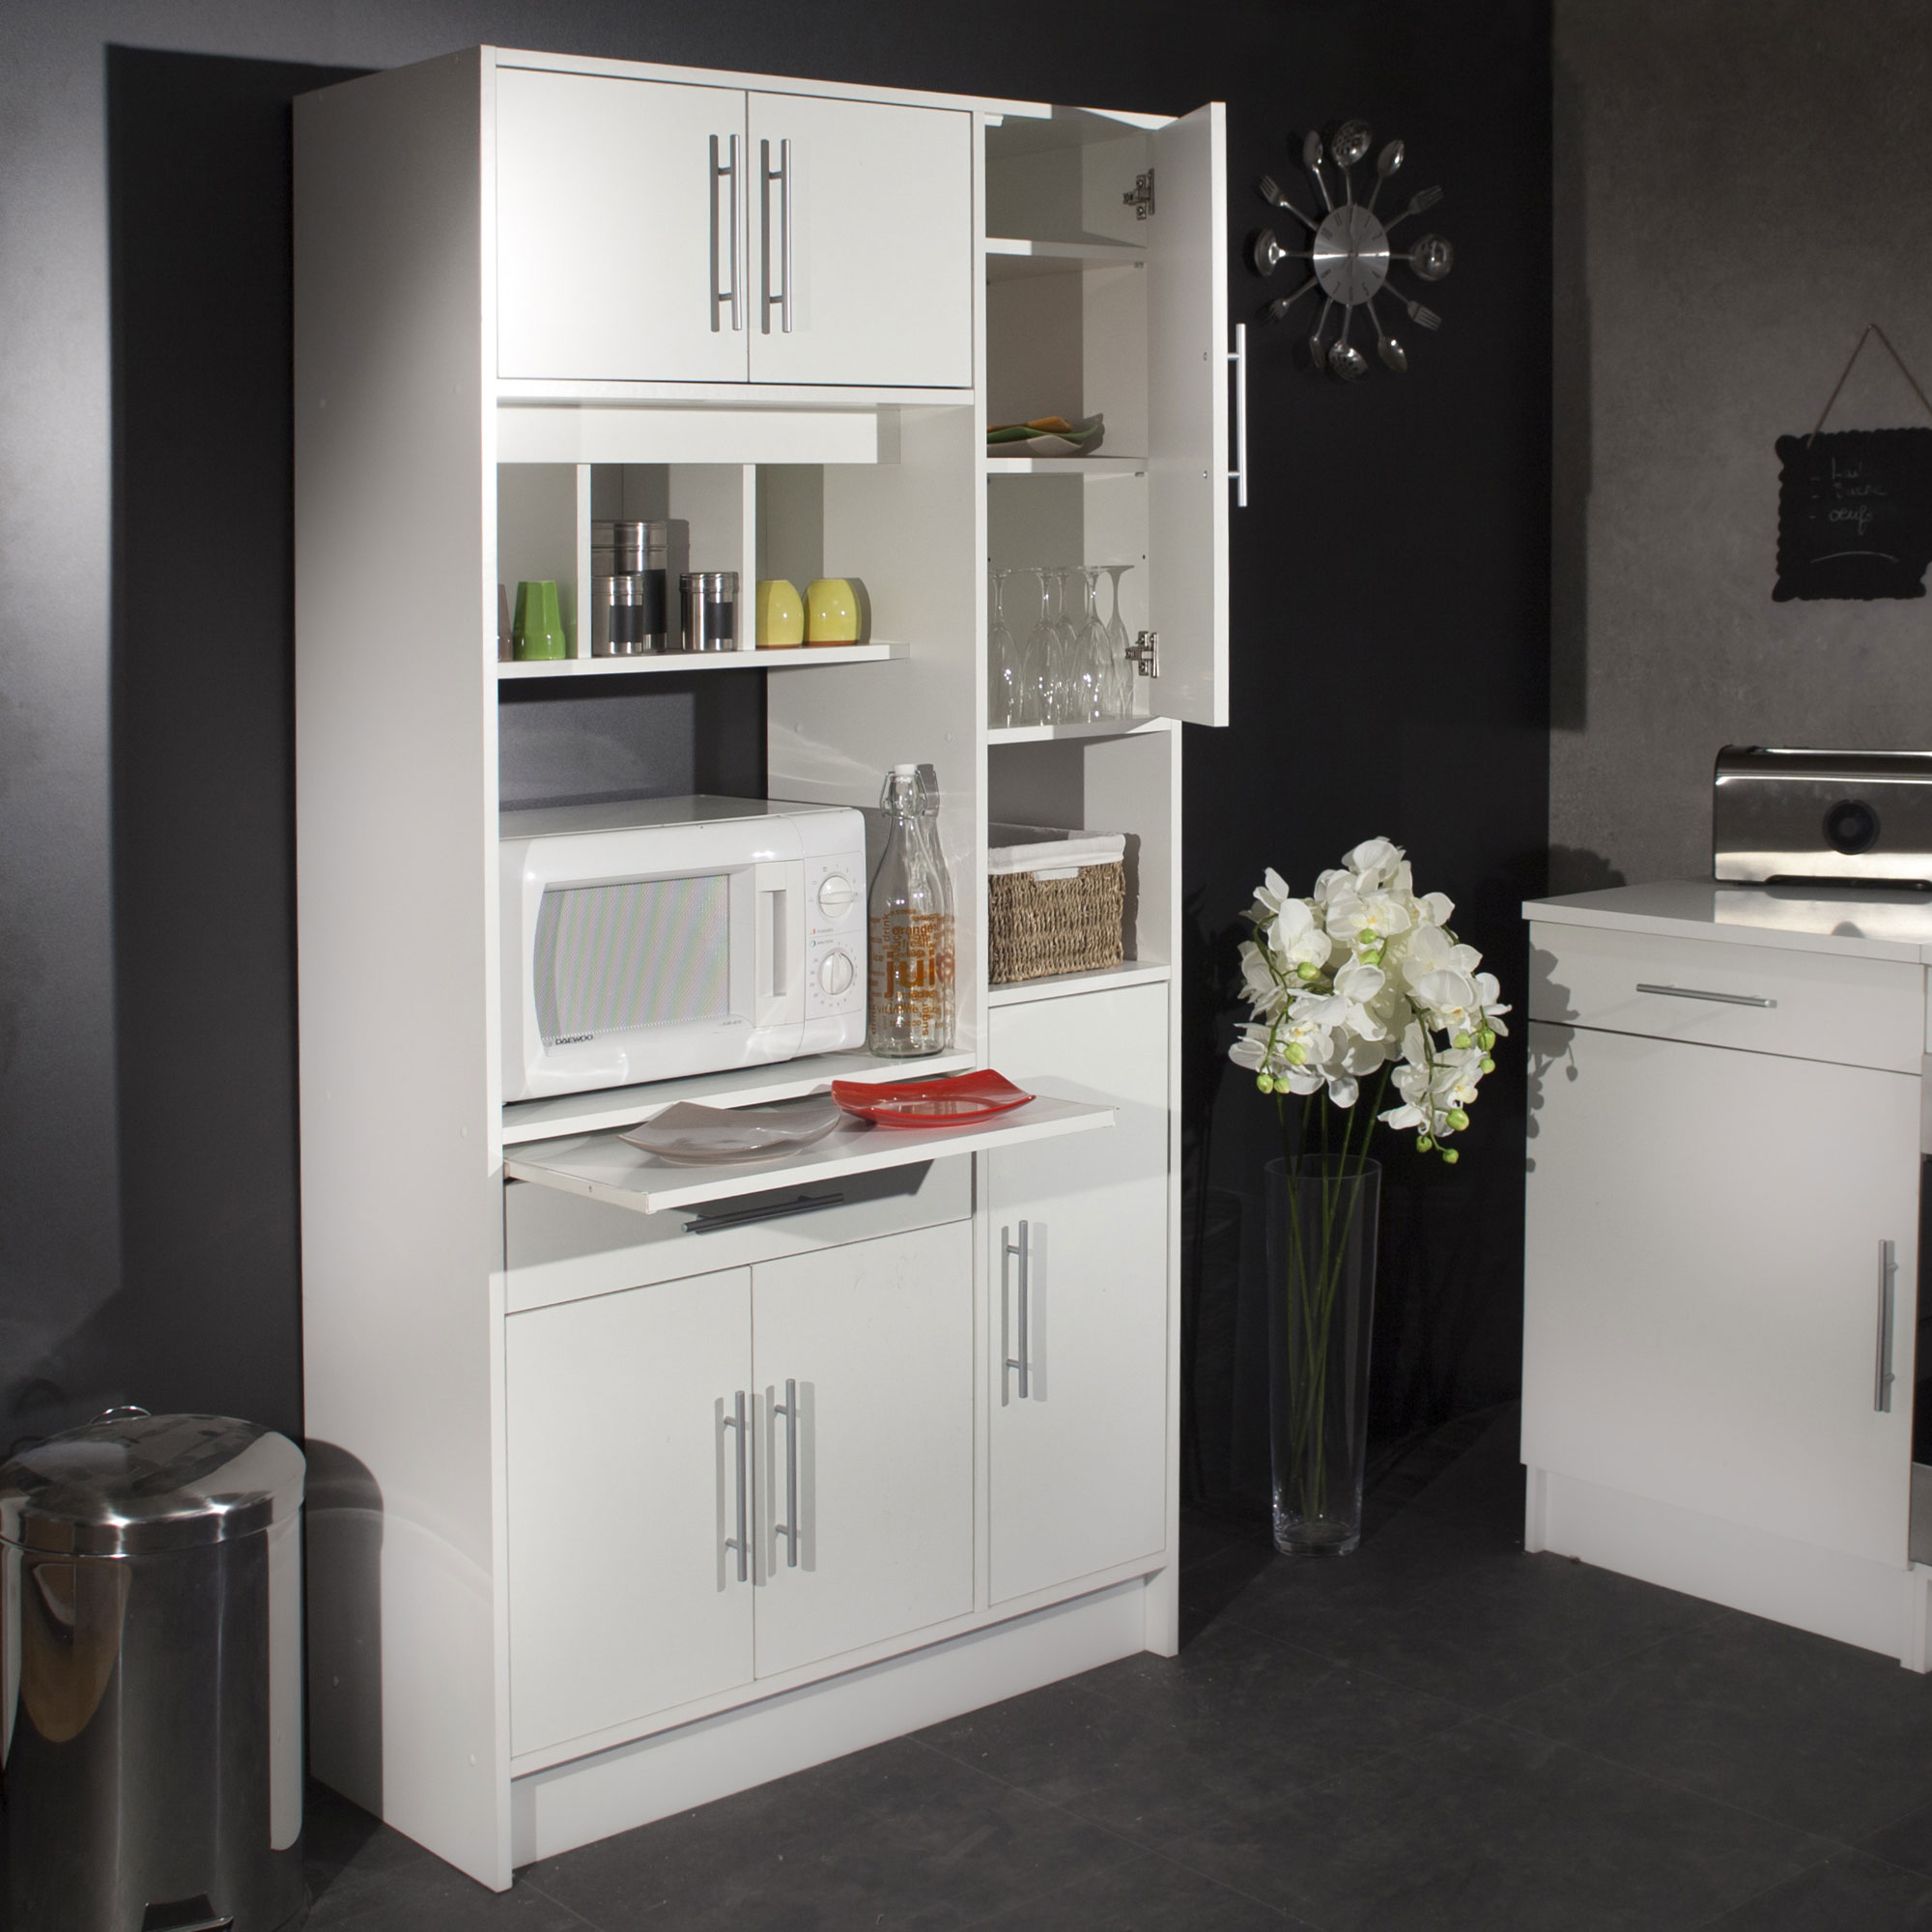 meuble de cuisine paiement en 4 fois maison et mobilier. Black Bedroom Furniture Sets. Home Design Ideas